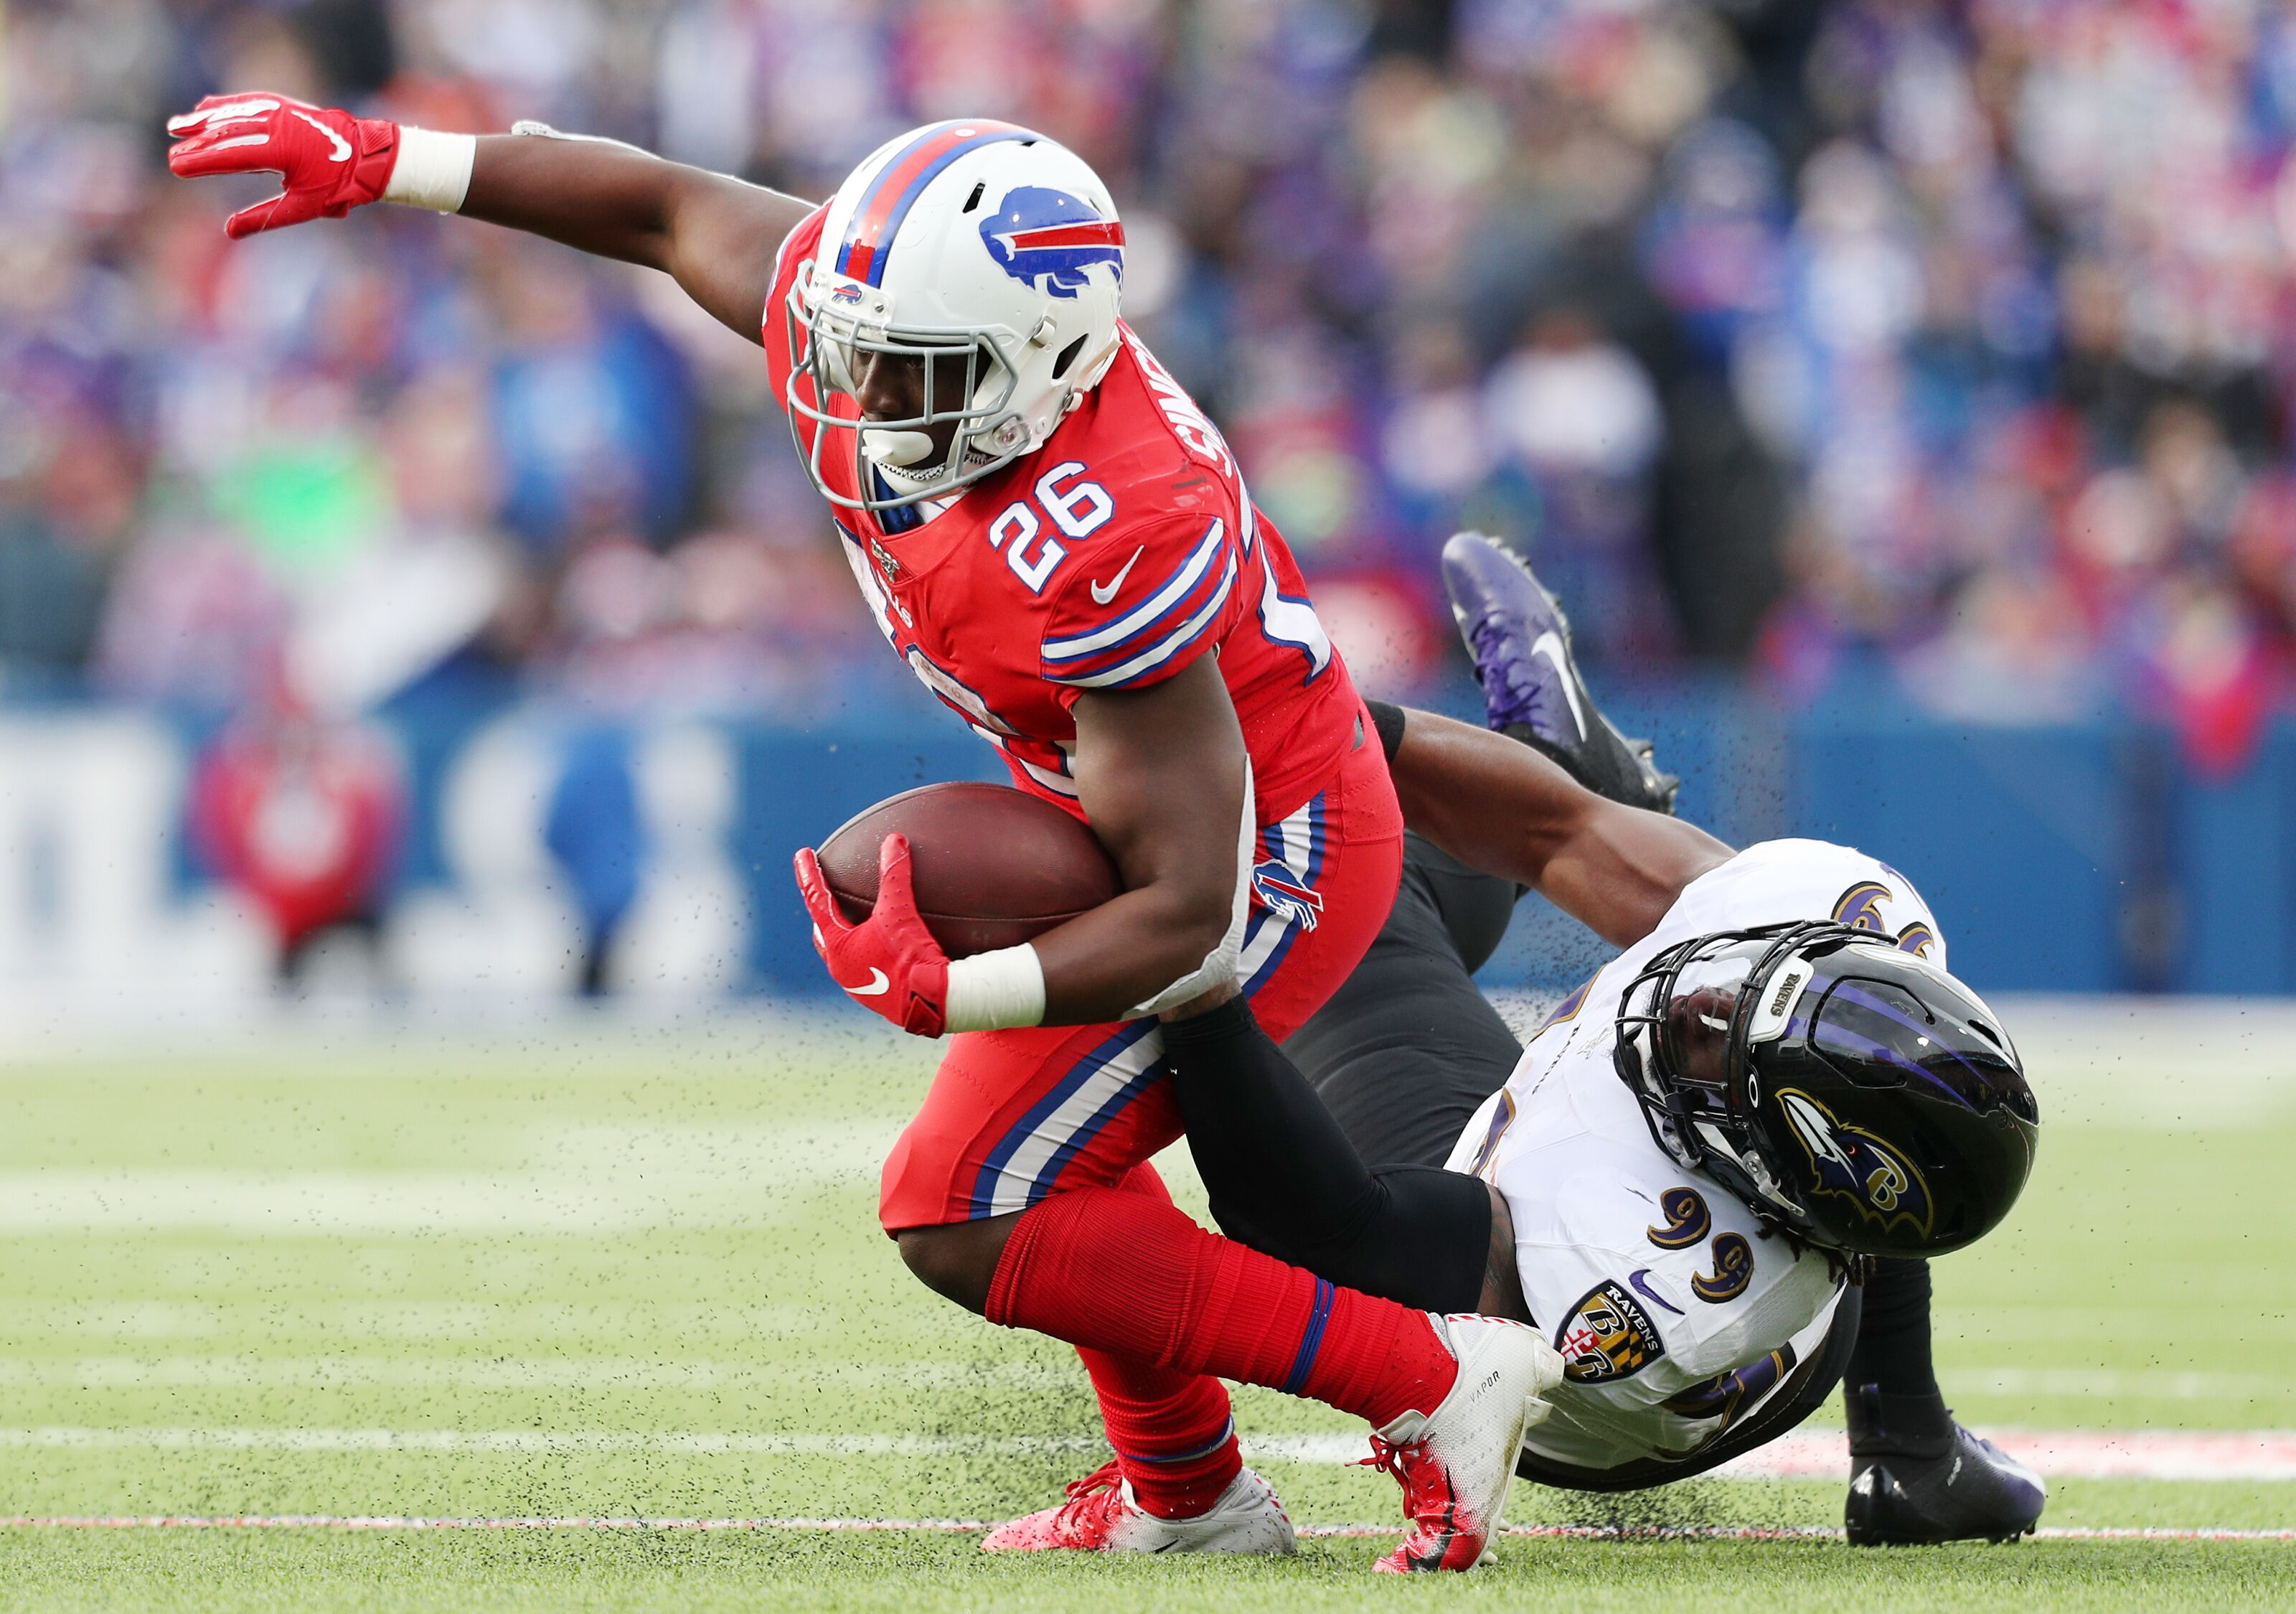 Buffalo Bills trail Ravens at halftime as offense struggles